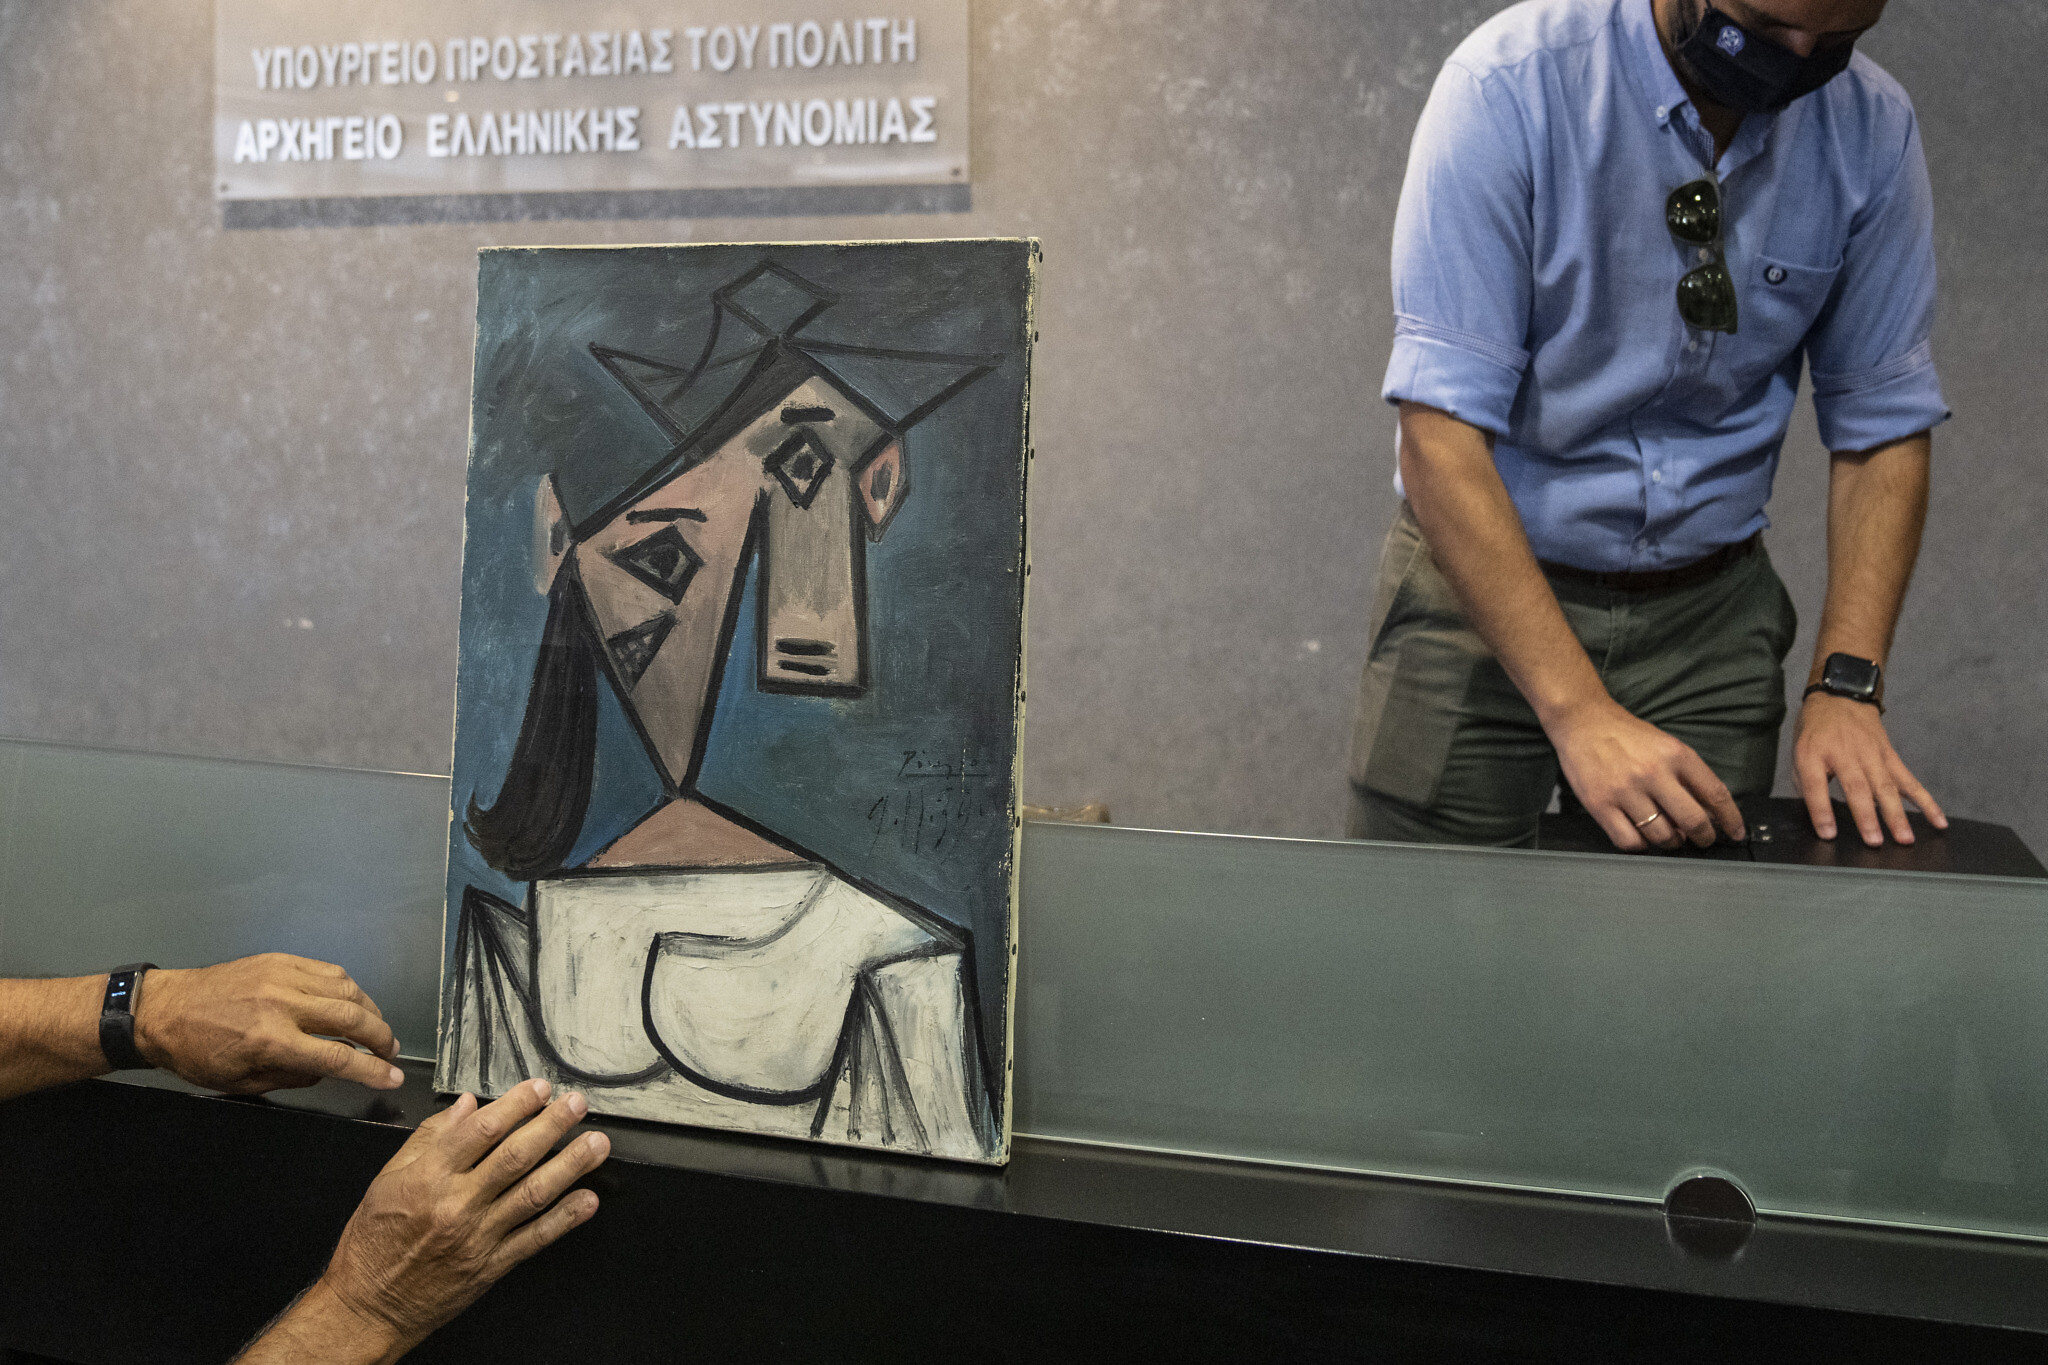 Greek police recover stolen Picasso painting, then drop it | The Times of  Israel